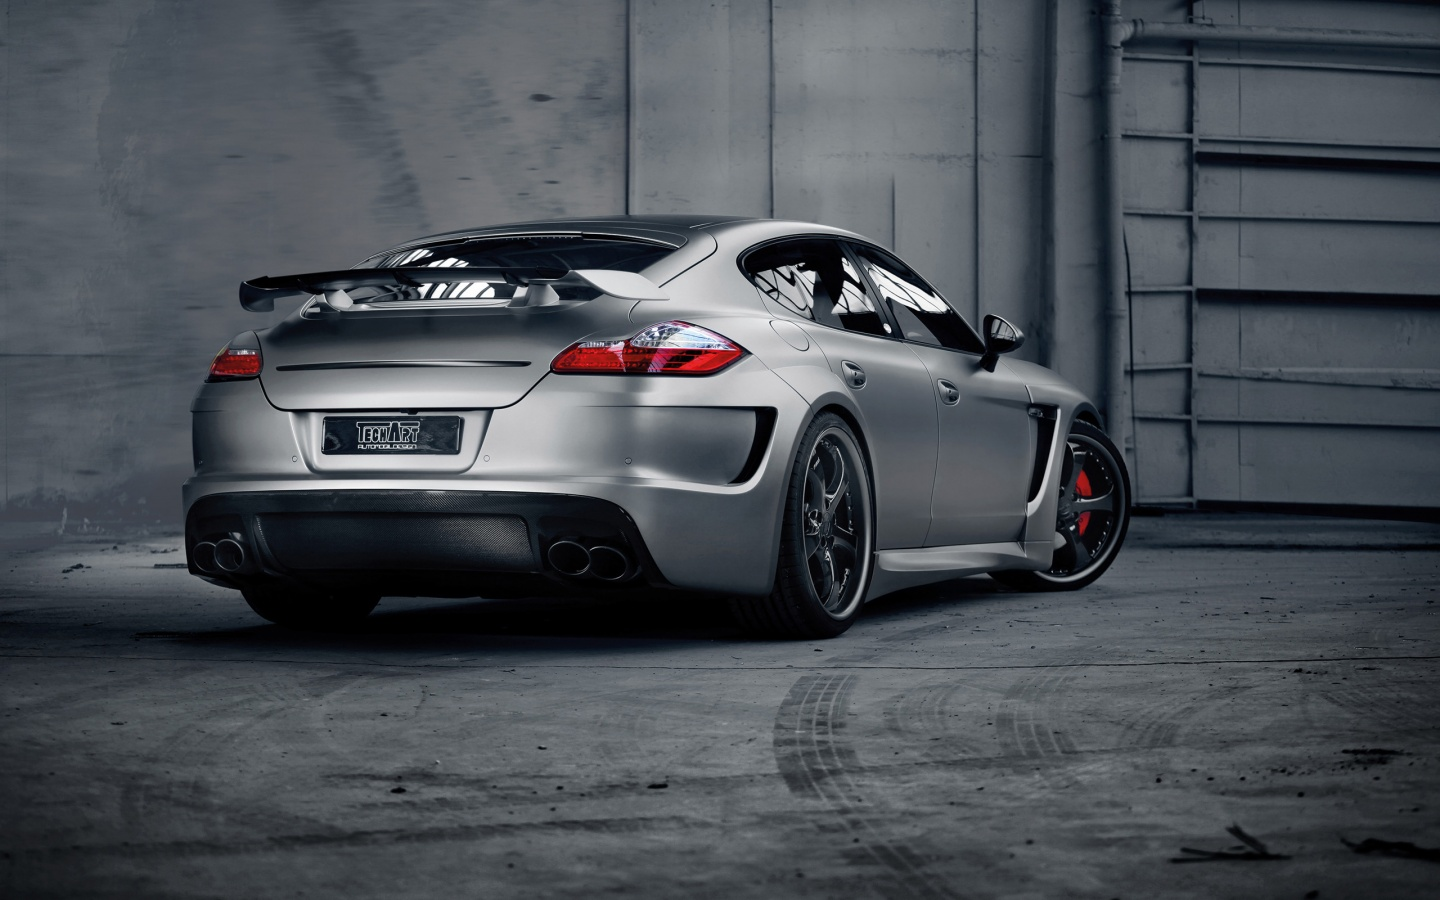 Porsche Panamera Turbo 2013 photo - 4